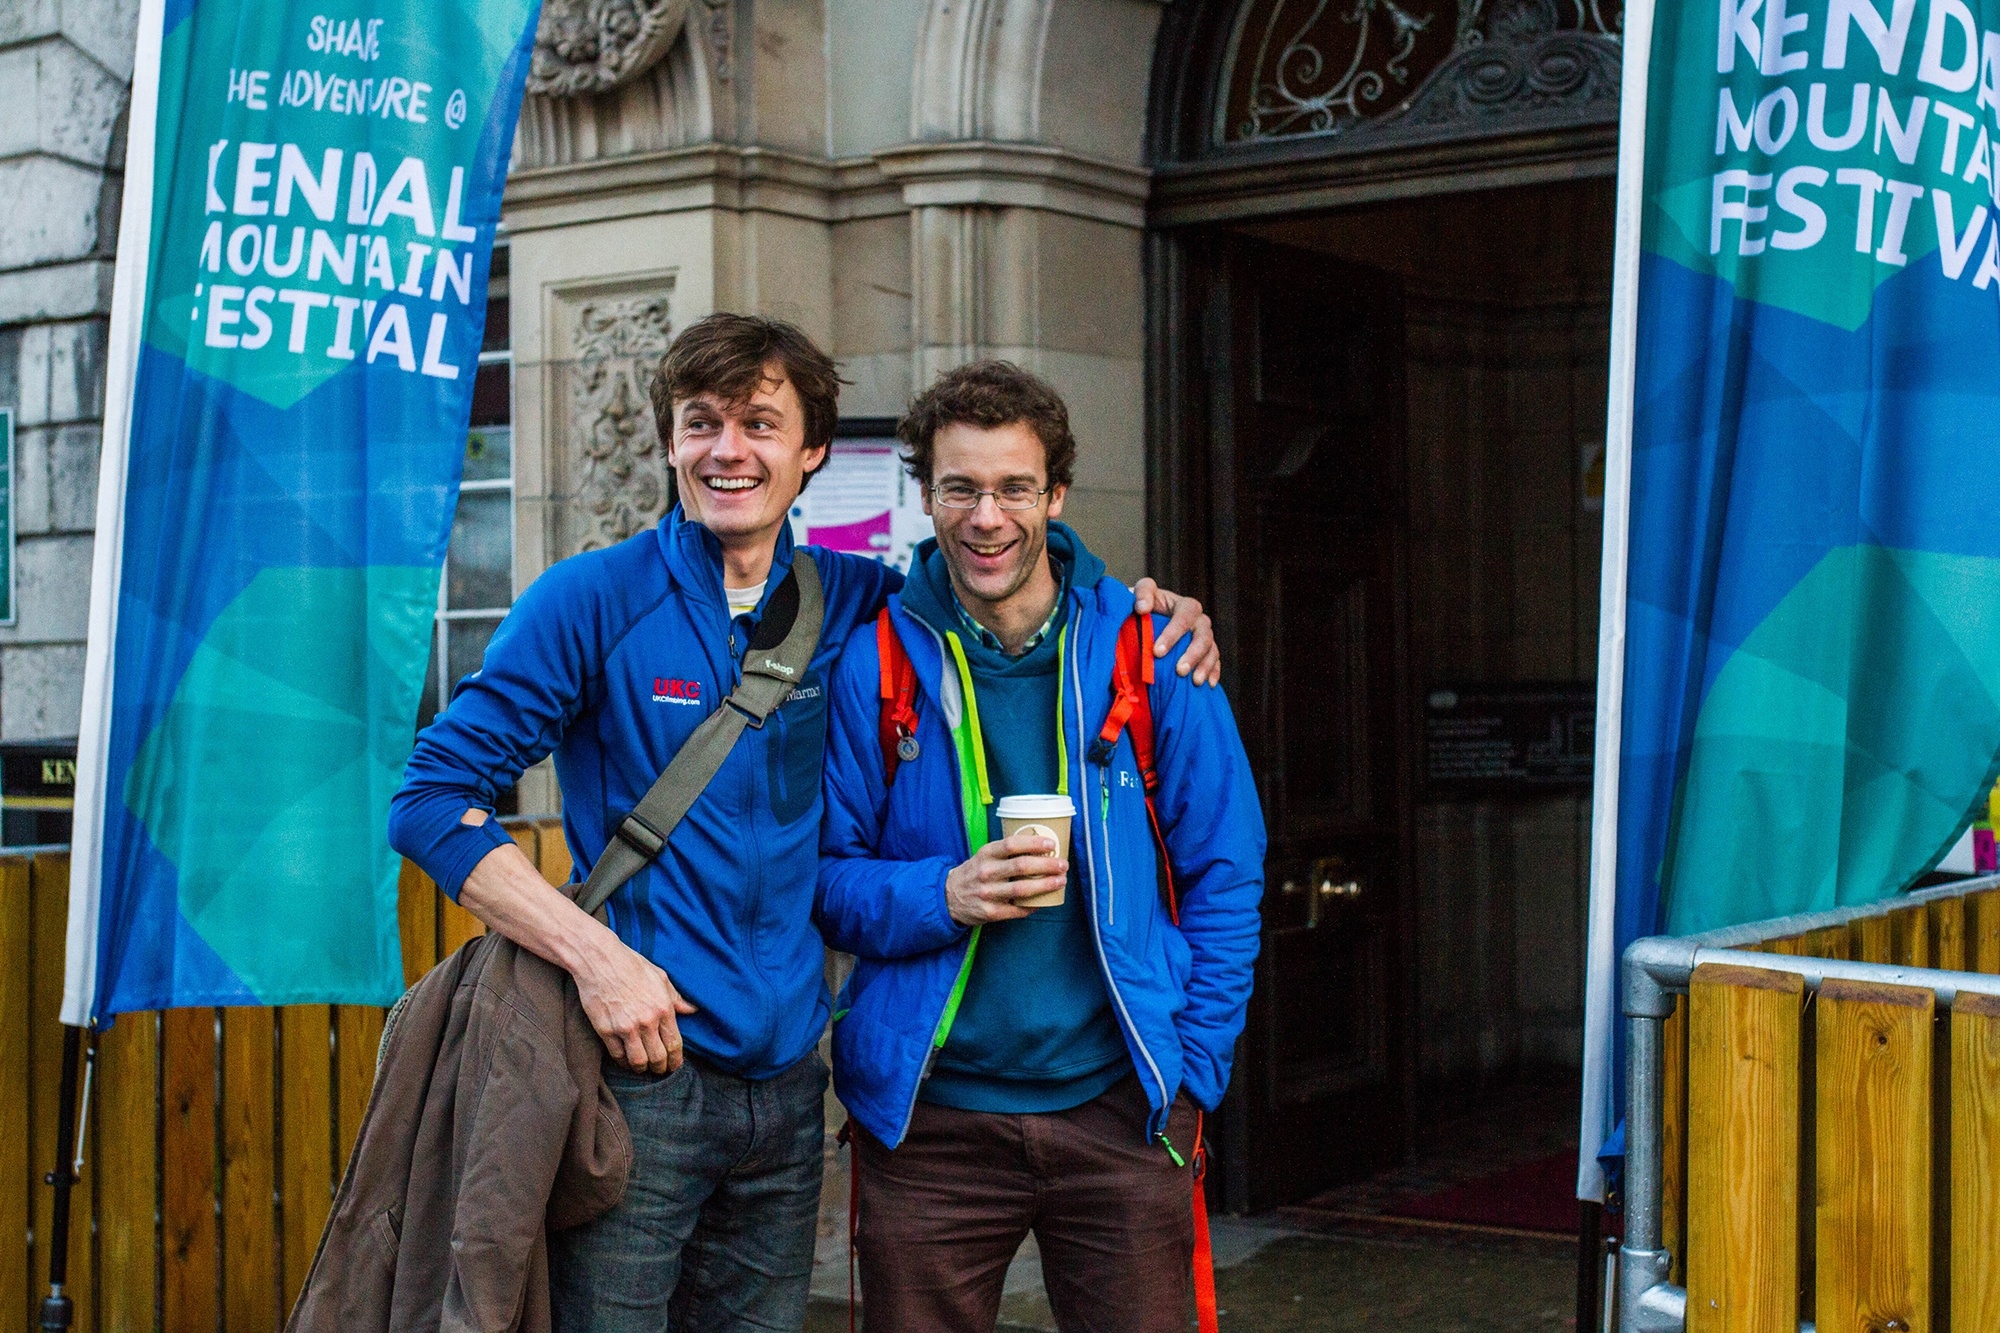 Ben Tibbetts and Rob Greenwood at Kendal Mountain Festival. Photography by Jessie Leong